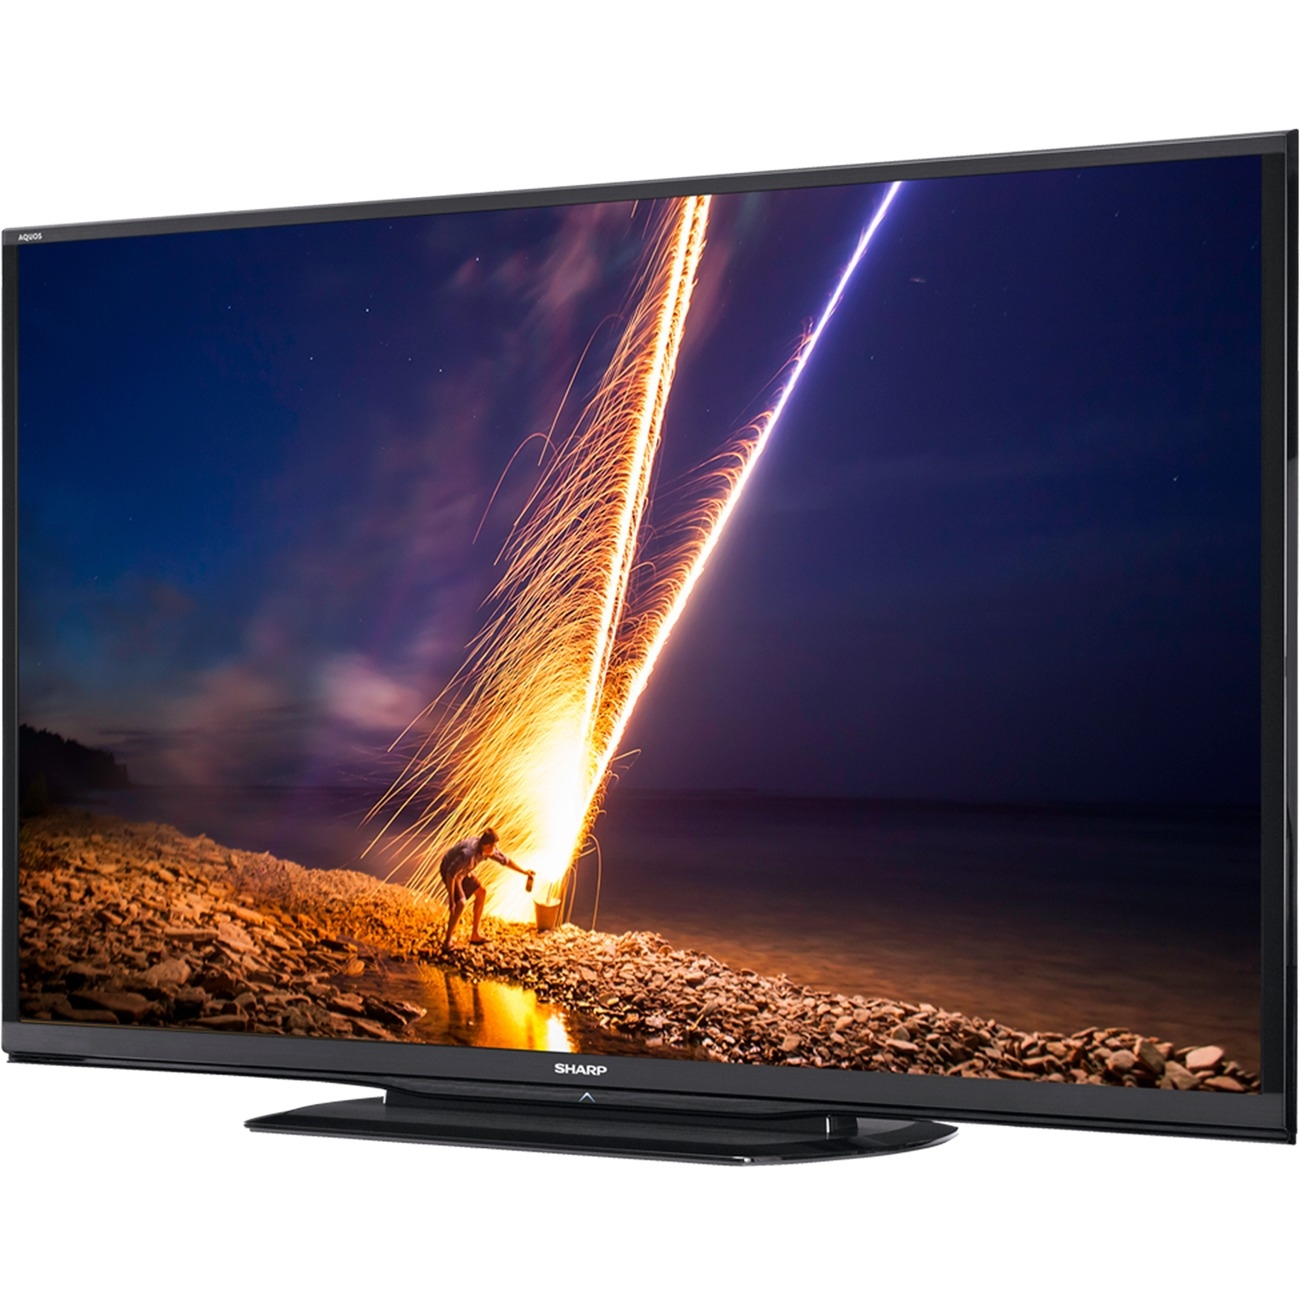 Sharp AQUOS LC-90LE657U 90-inch LED 3D Smart TV - 1920 x 1080 - (Refurbished)